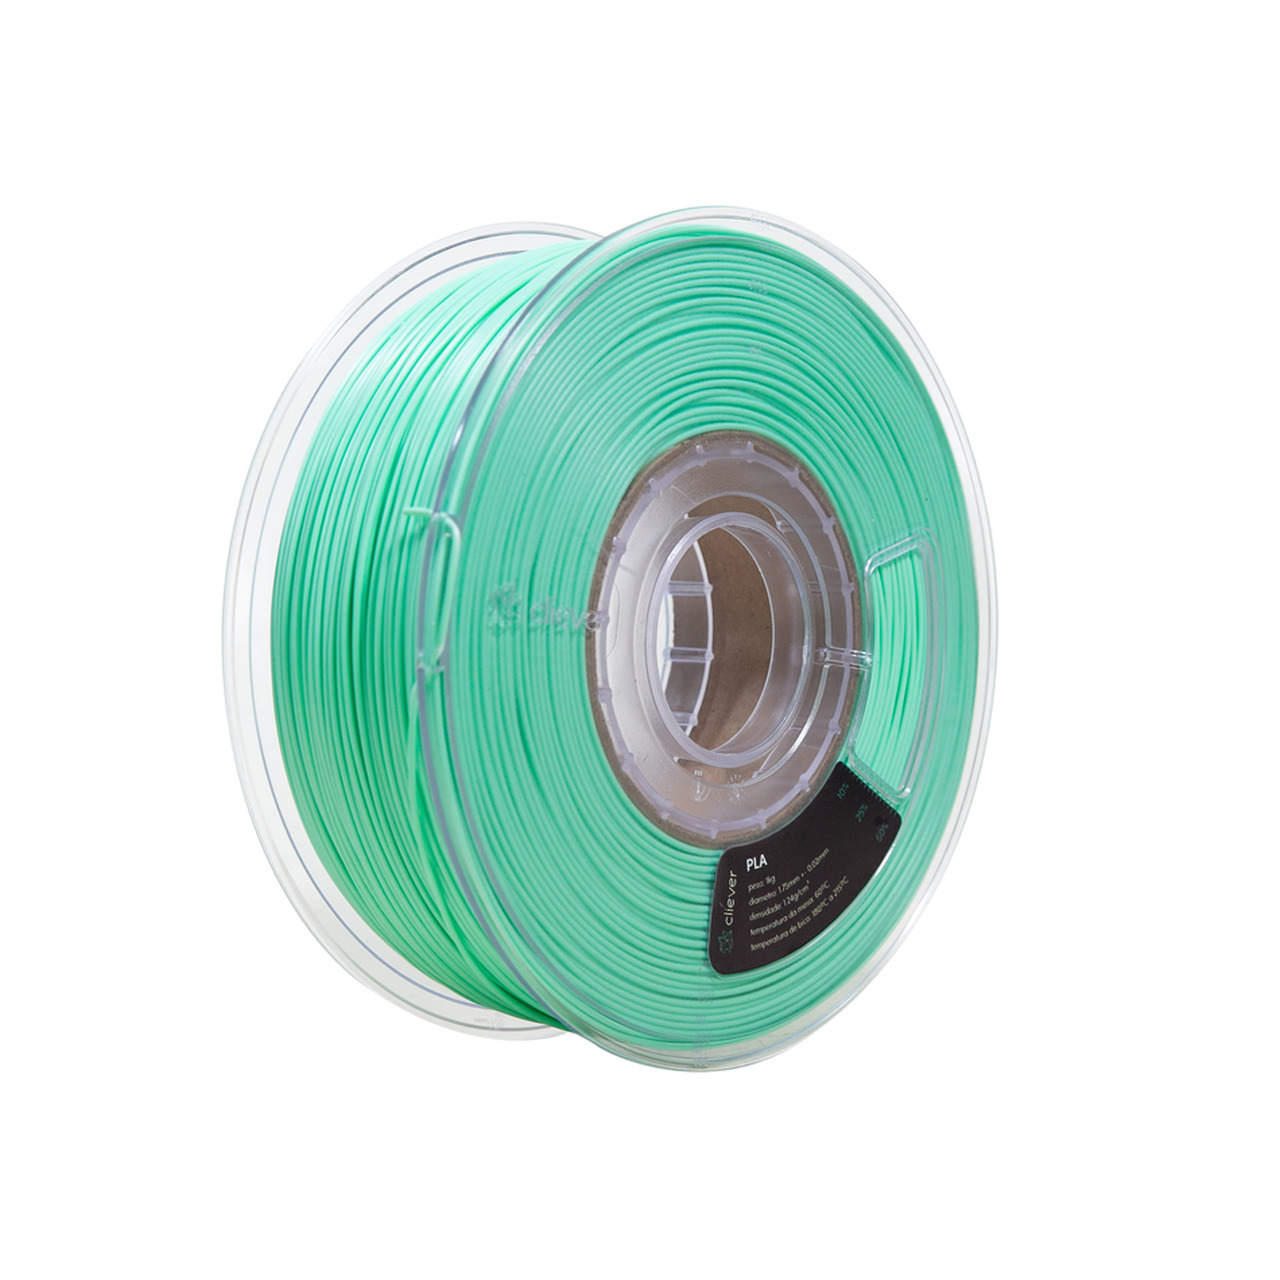 Filamento ABS - Verde Tifanny - Cliever - 1.75mm - 1kg